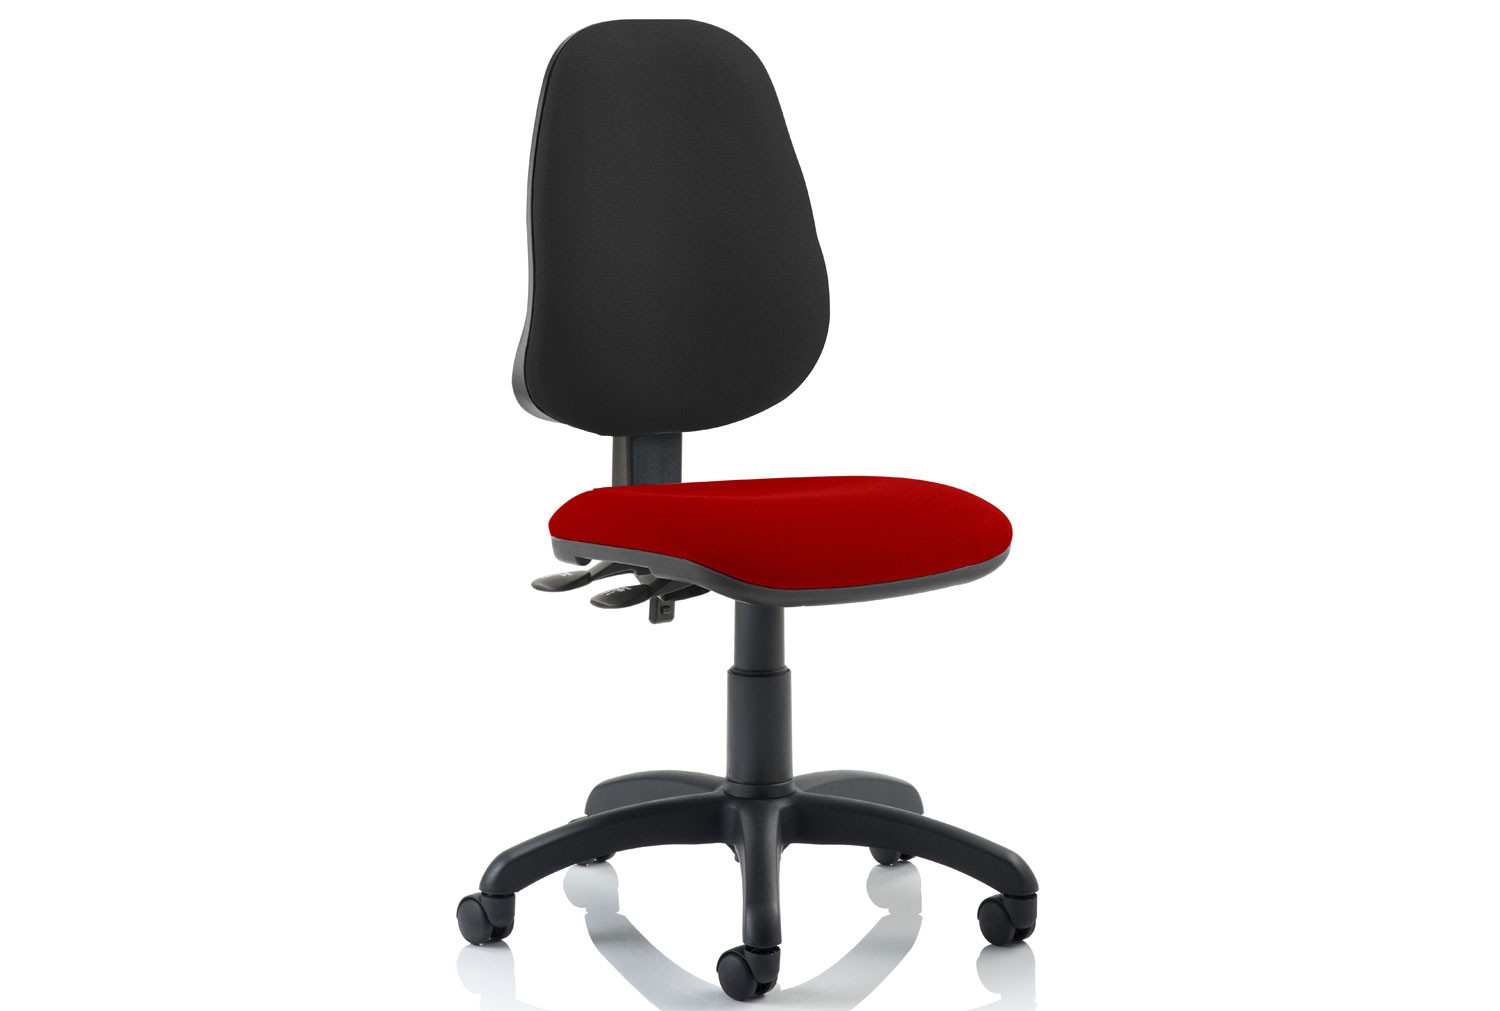 Astounding Lunar 2 Lever Two Tone Fabric Operator Chair No Arms Pdpeps Interior Chair Design Pdpepsorg